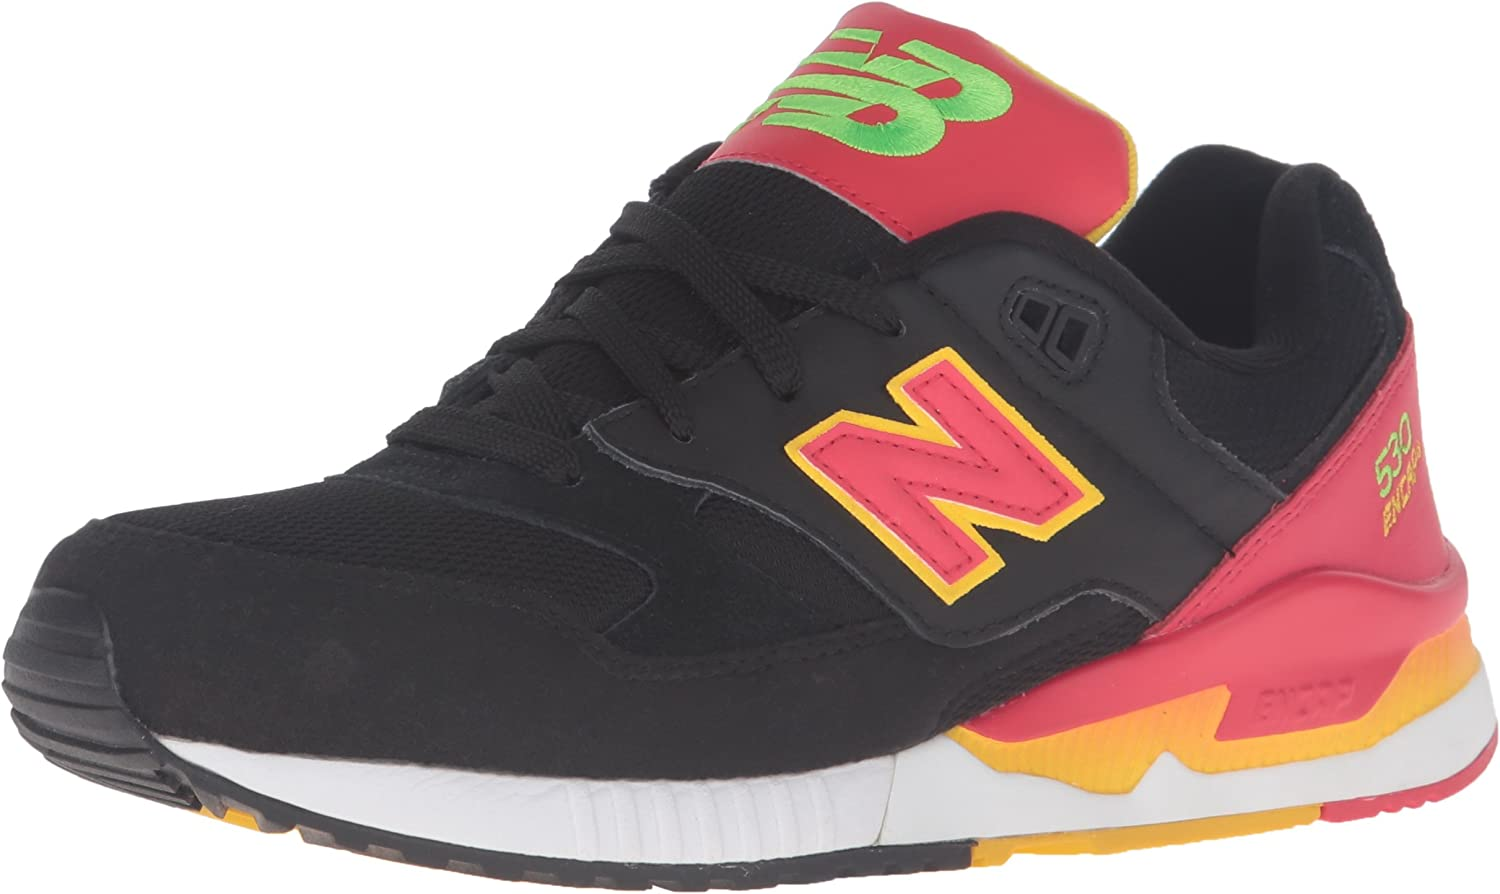 New Balance Inexpensive Men's 530 Summer Waves Lifestyle Max 56% OFF Sneaker Collection